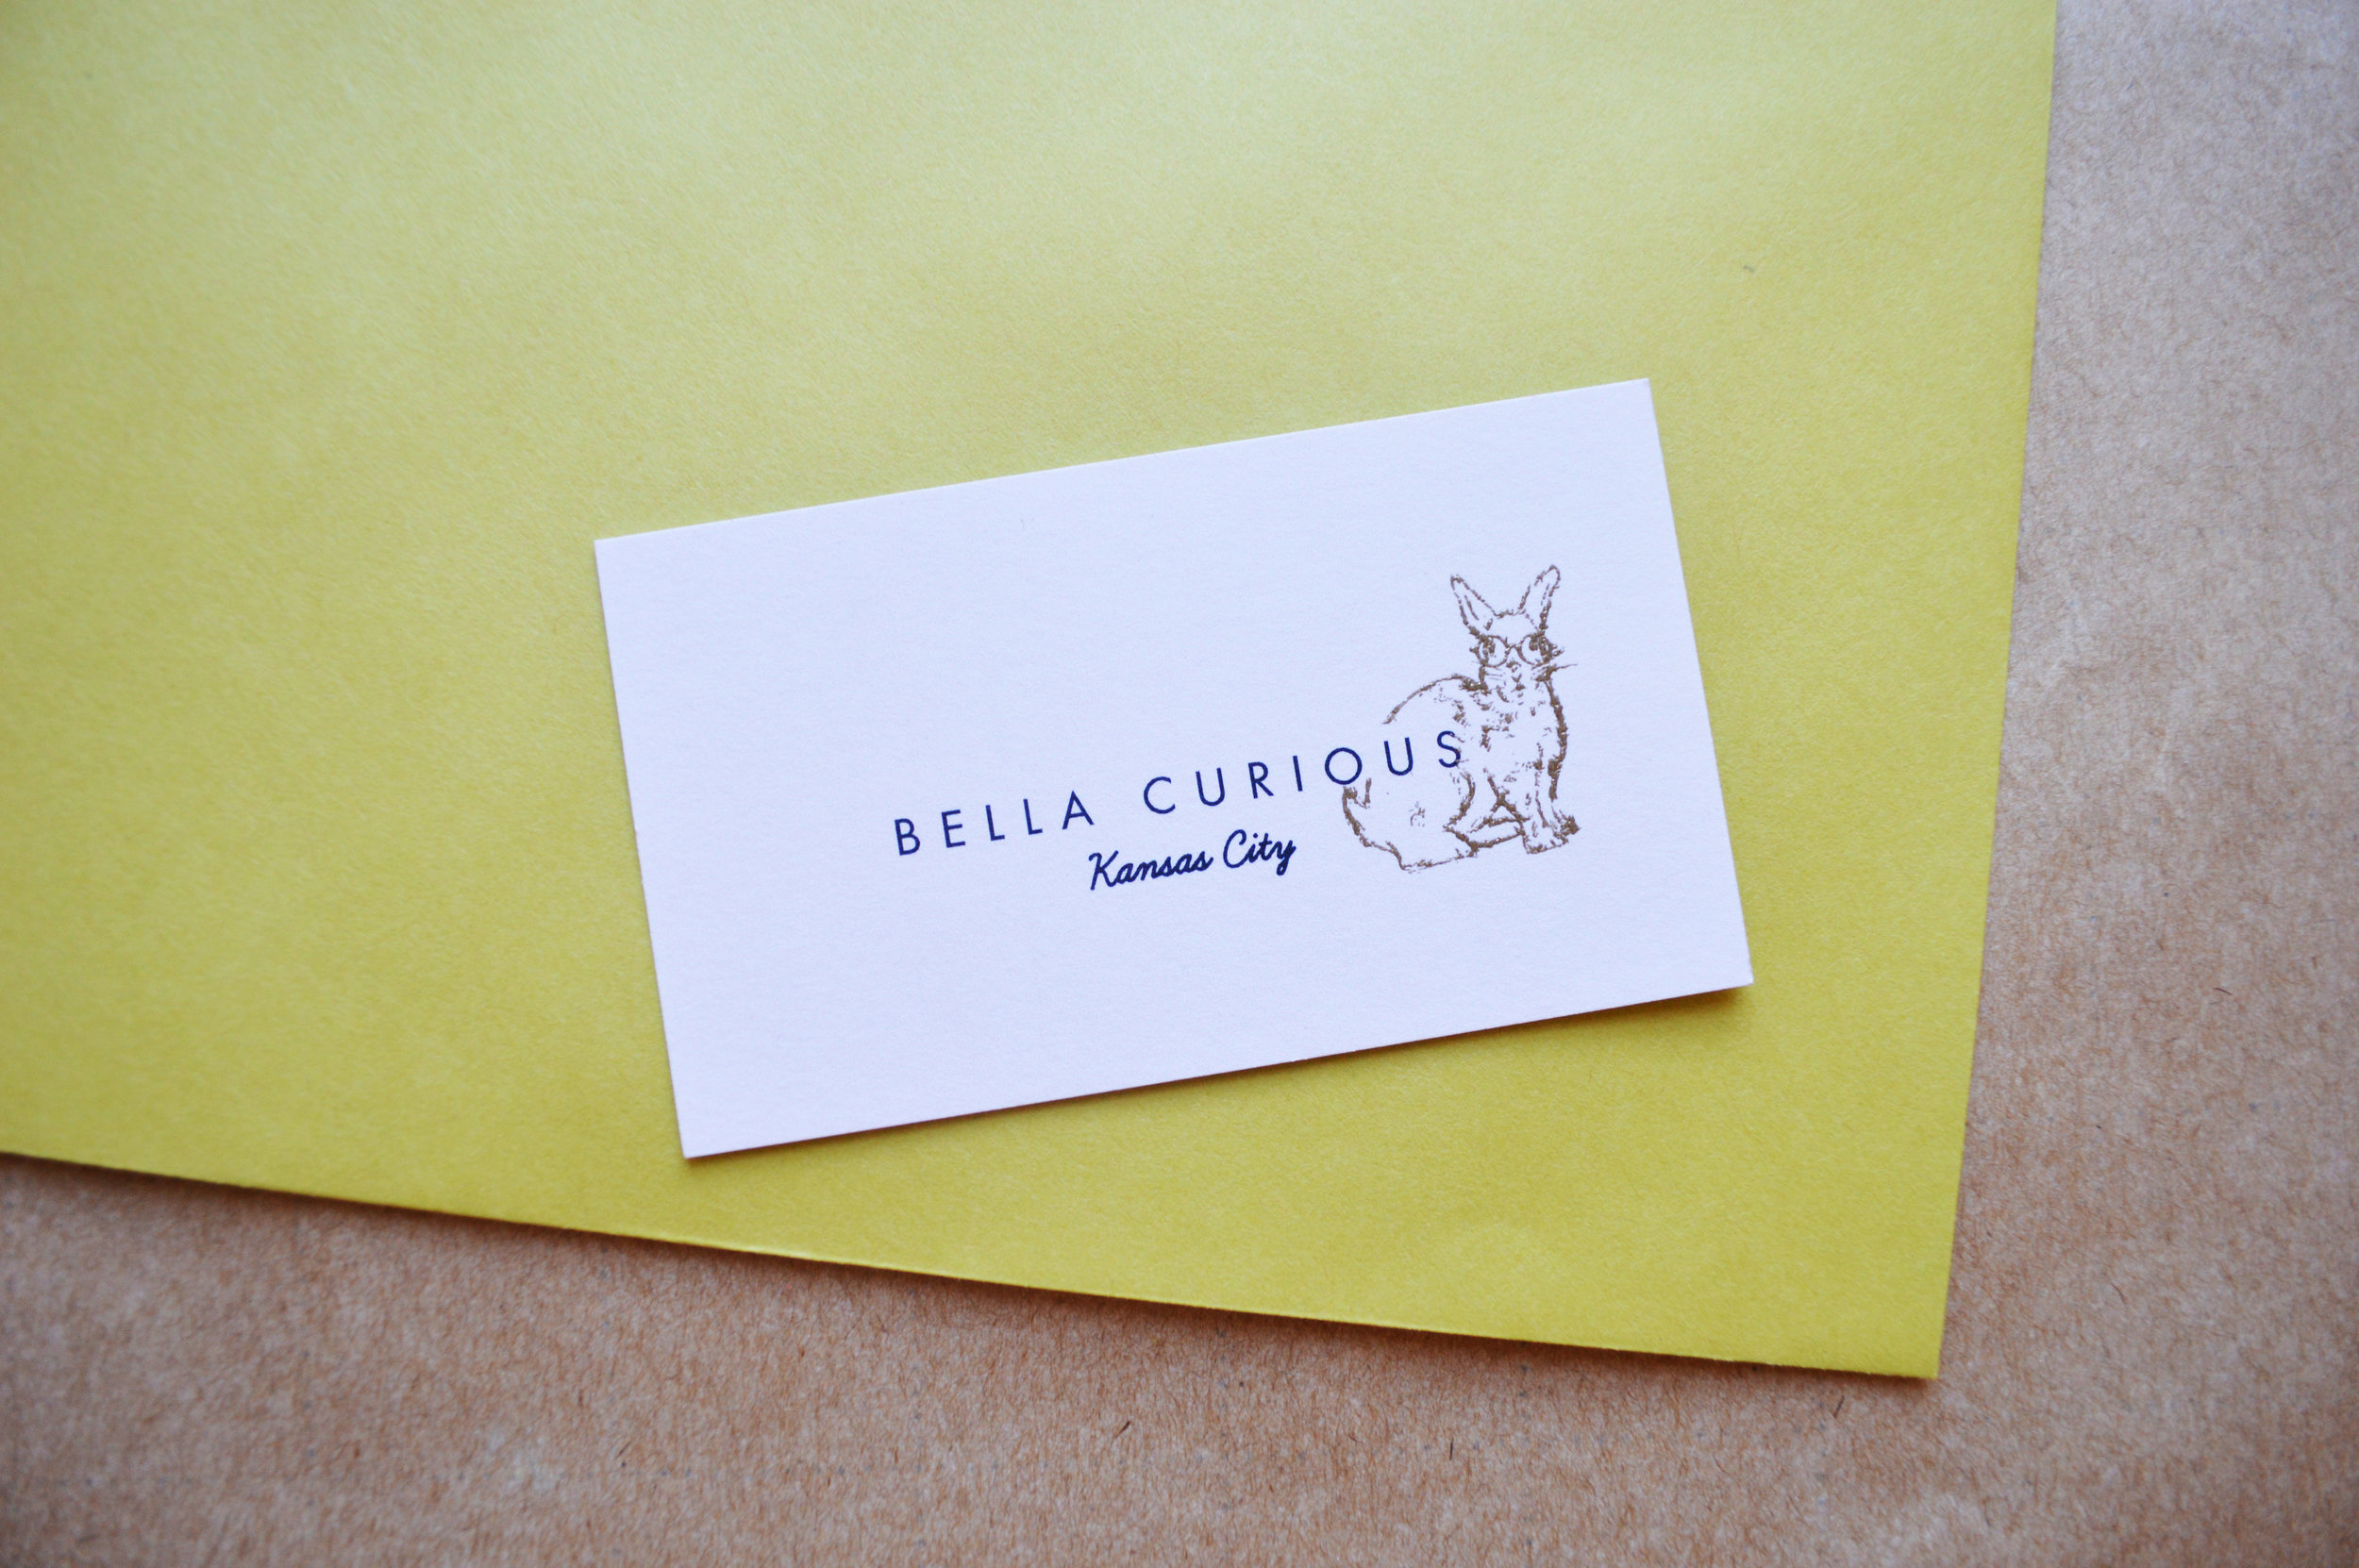 bella curious card.jpg